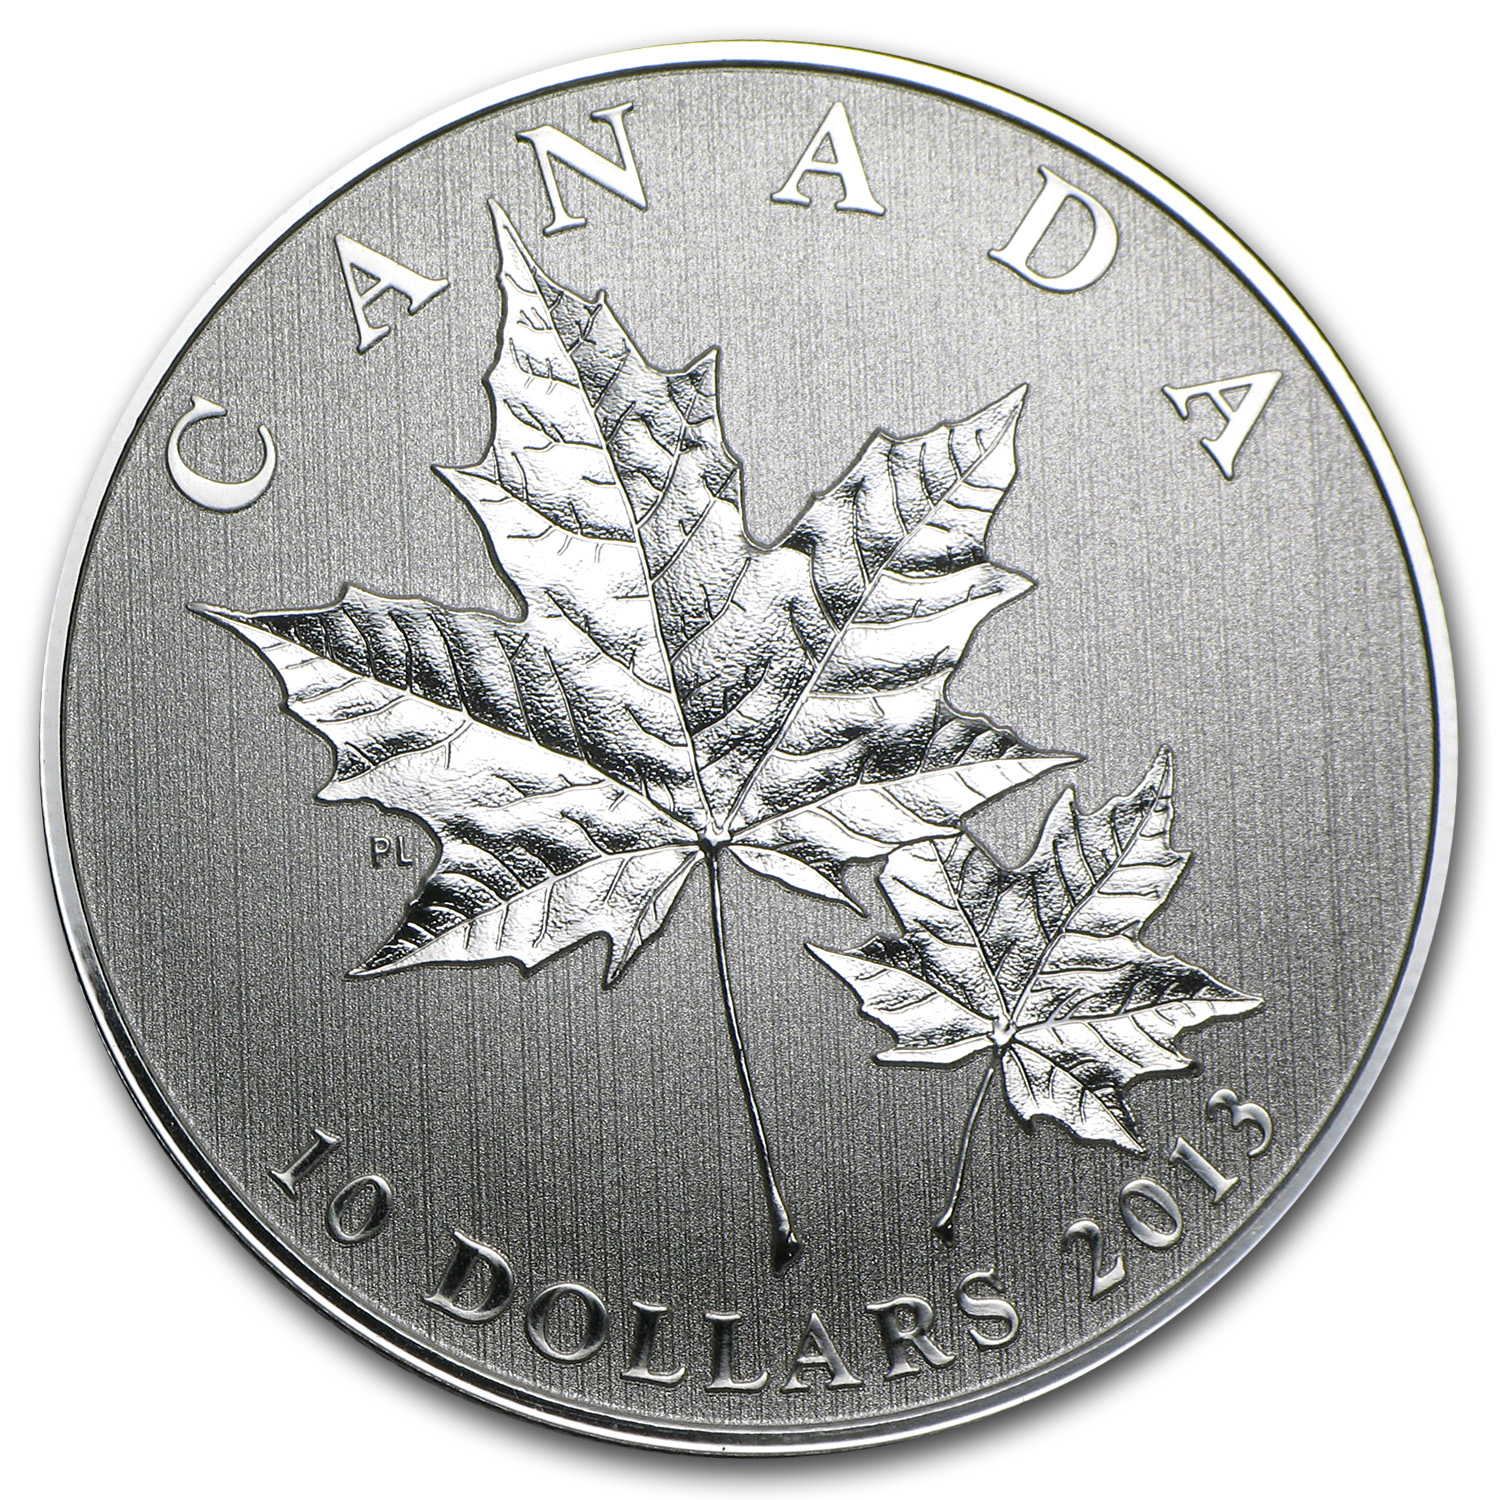 2013 Canada 1/2 oz Silver $10 Maple Leaf Forever (w/Box & COA)